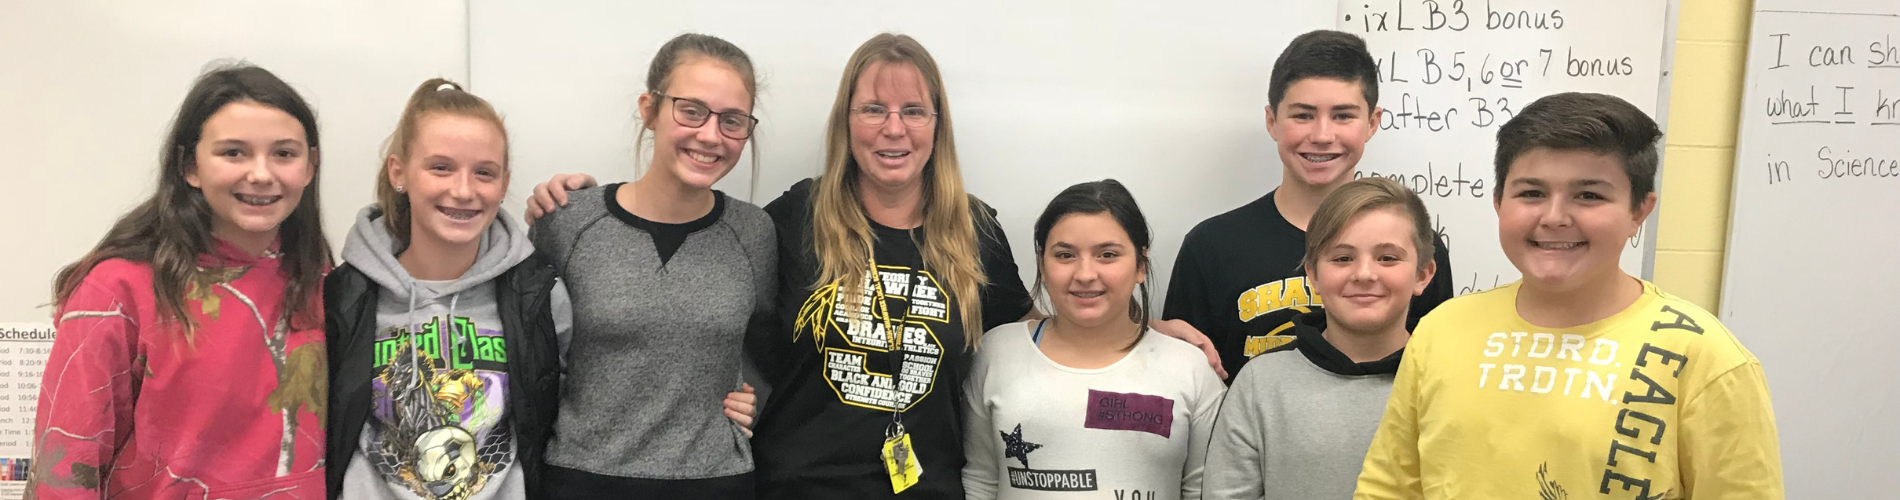 Shawnee Middle School Science Teacher Mrs. Calland with her students.